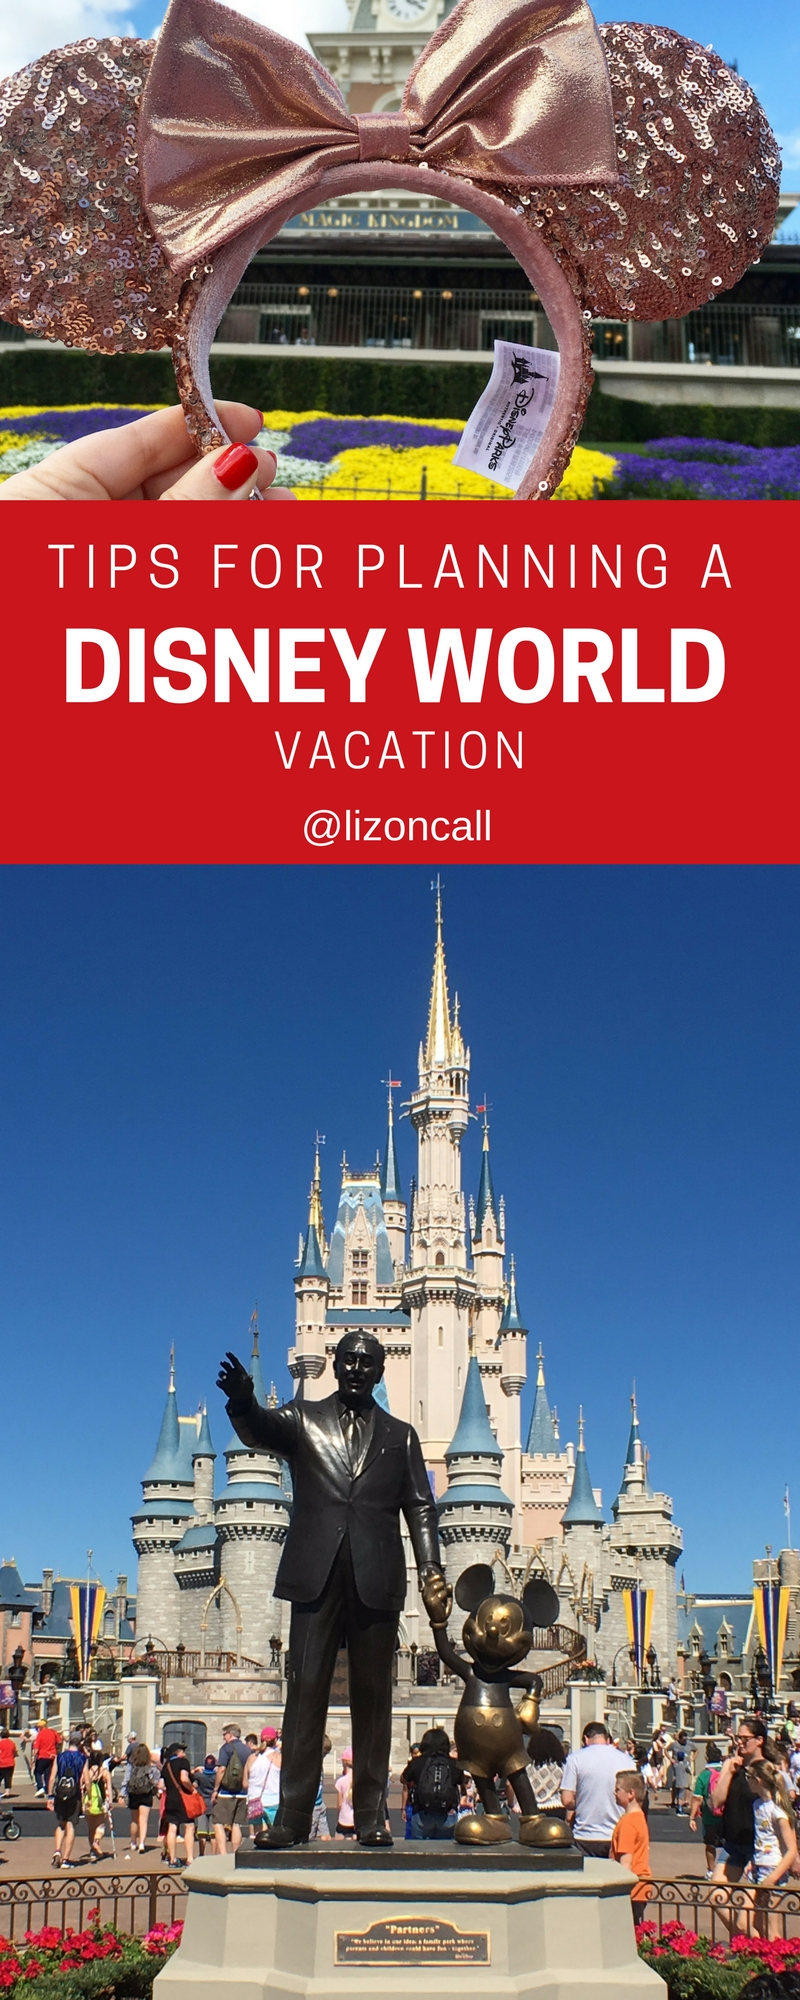 Top 5 Tips for Planning Your Walt Disney World Vacation ...